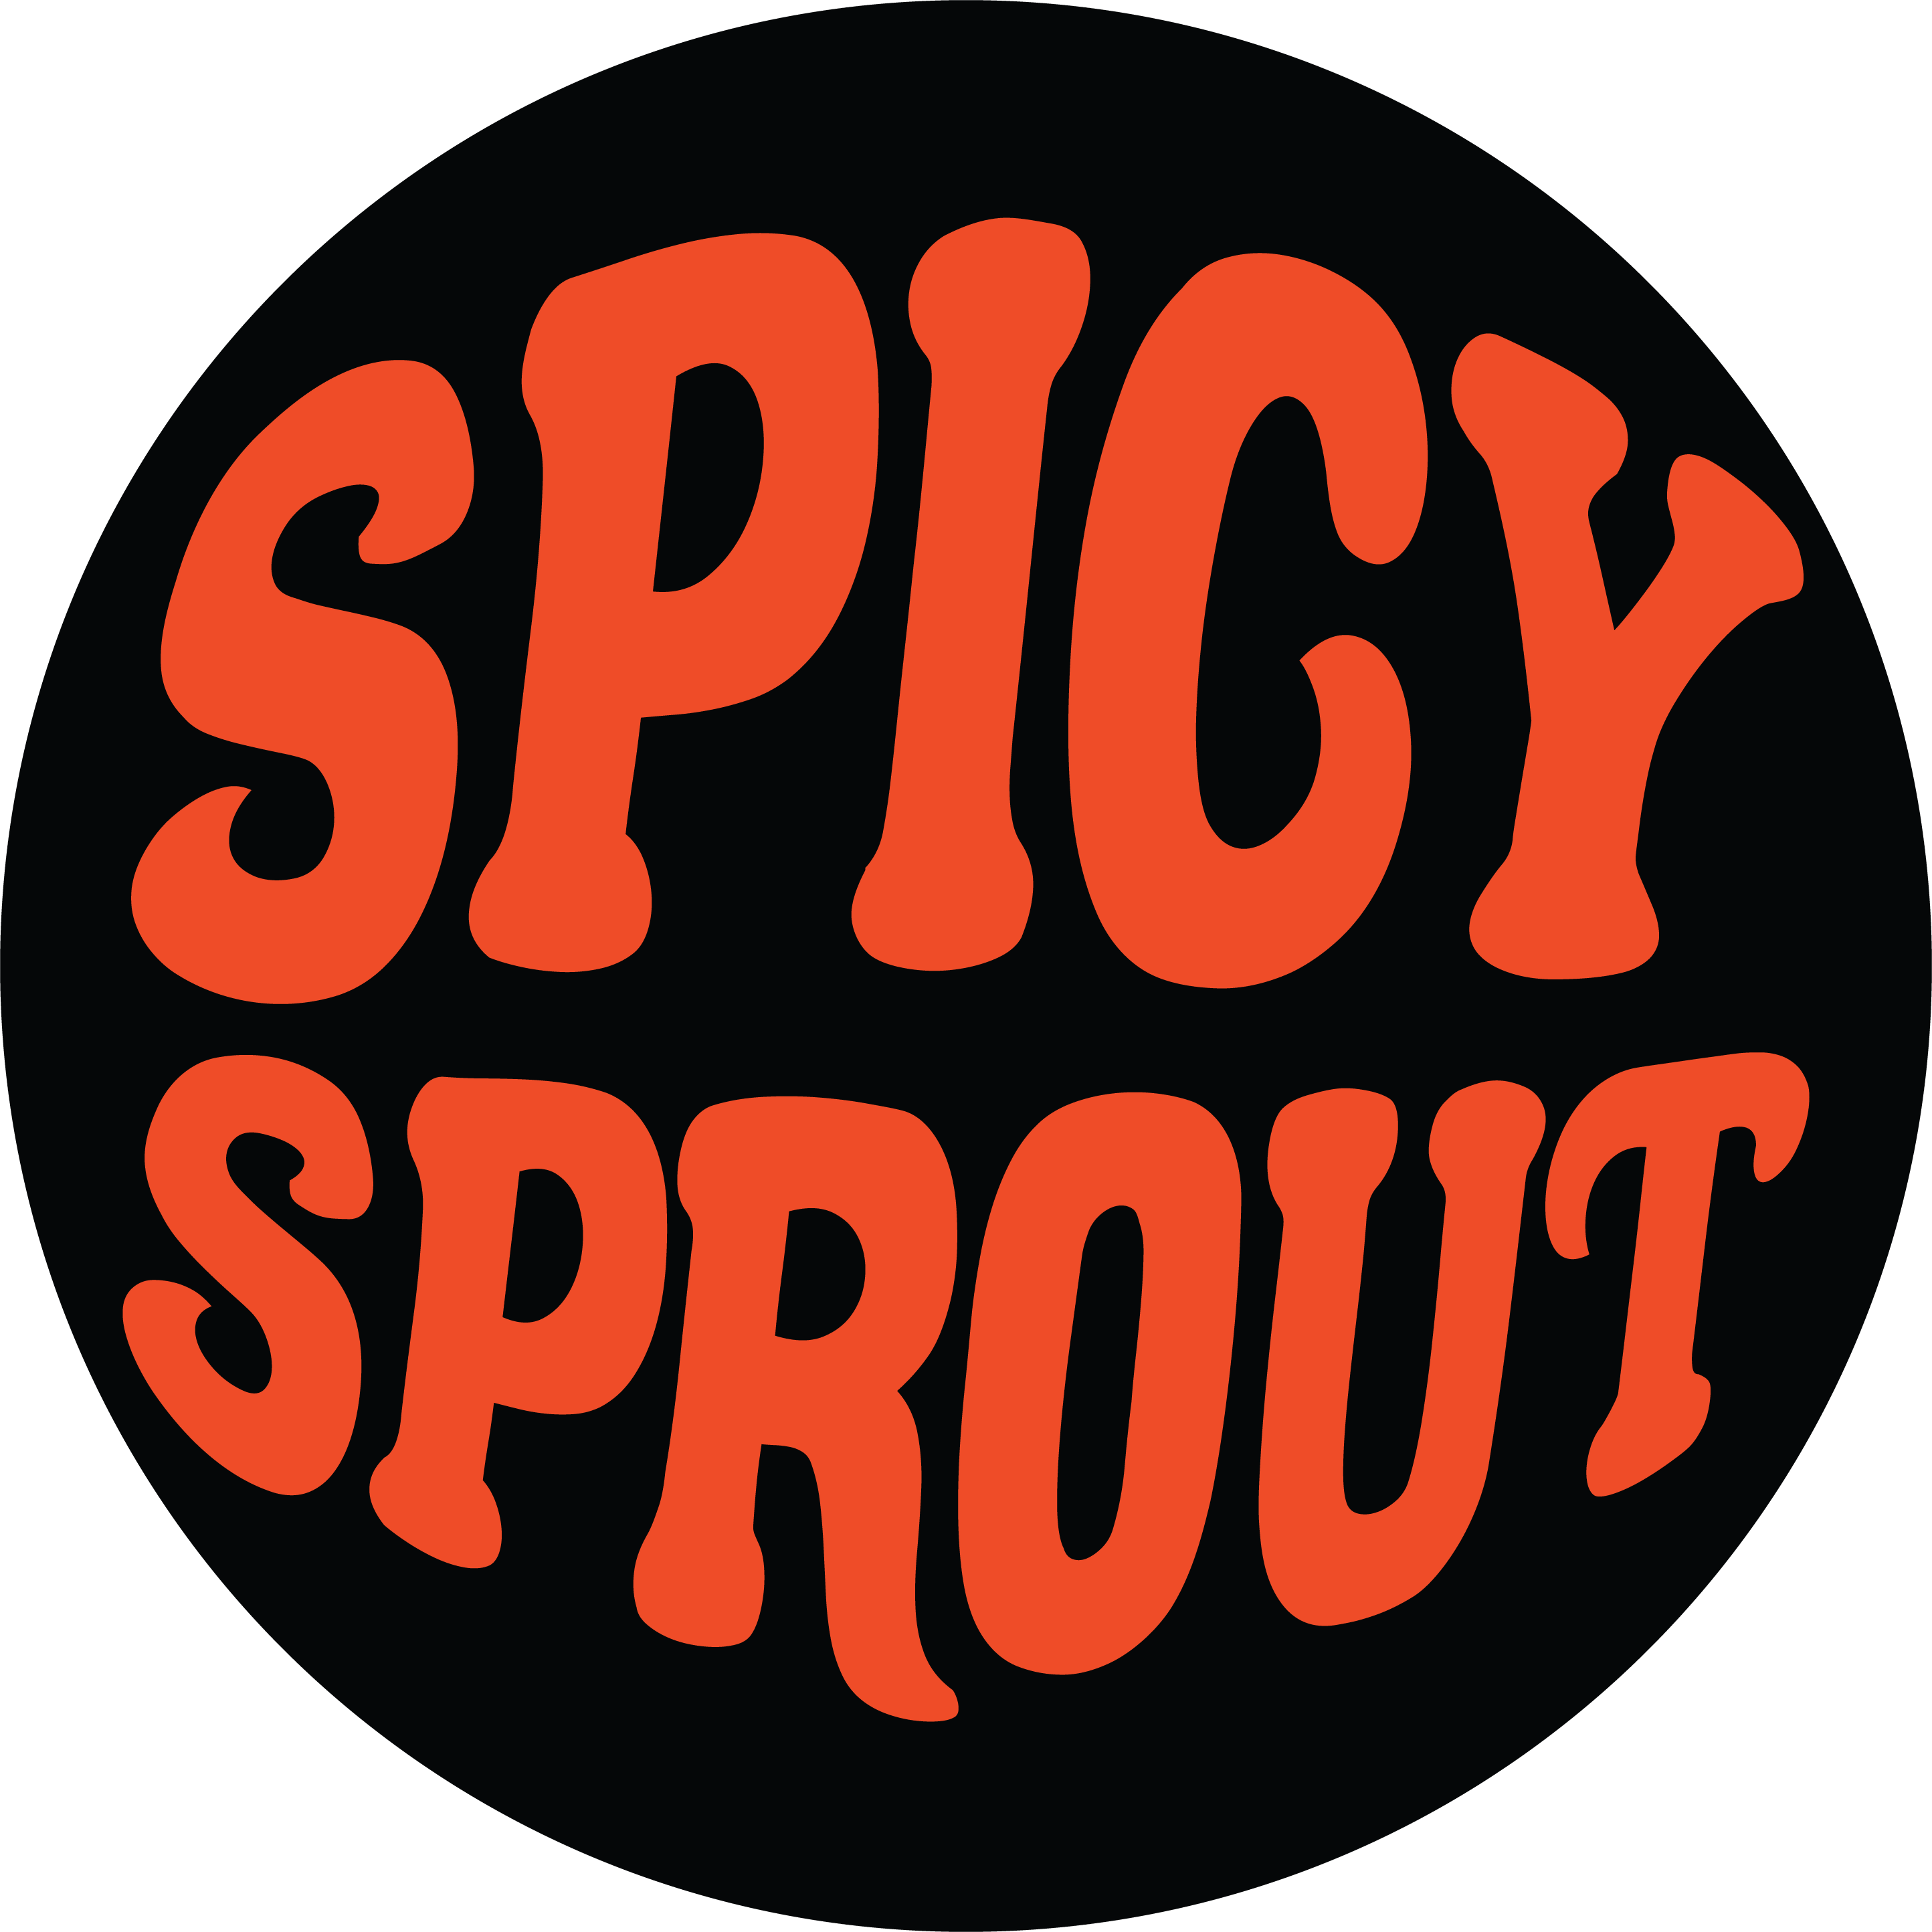 Logo for spicysprout's Artist Shop